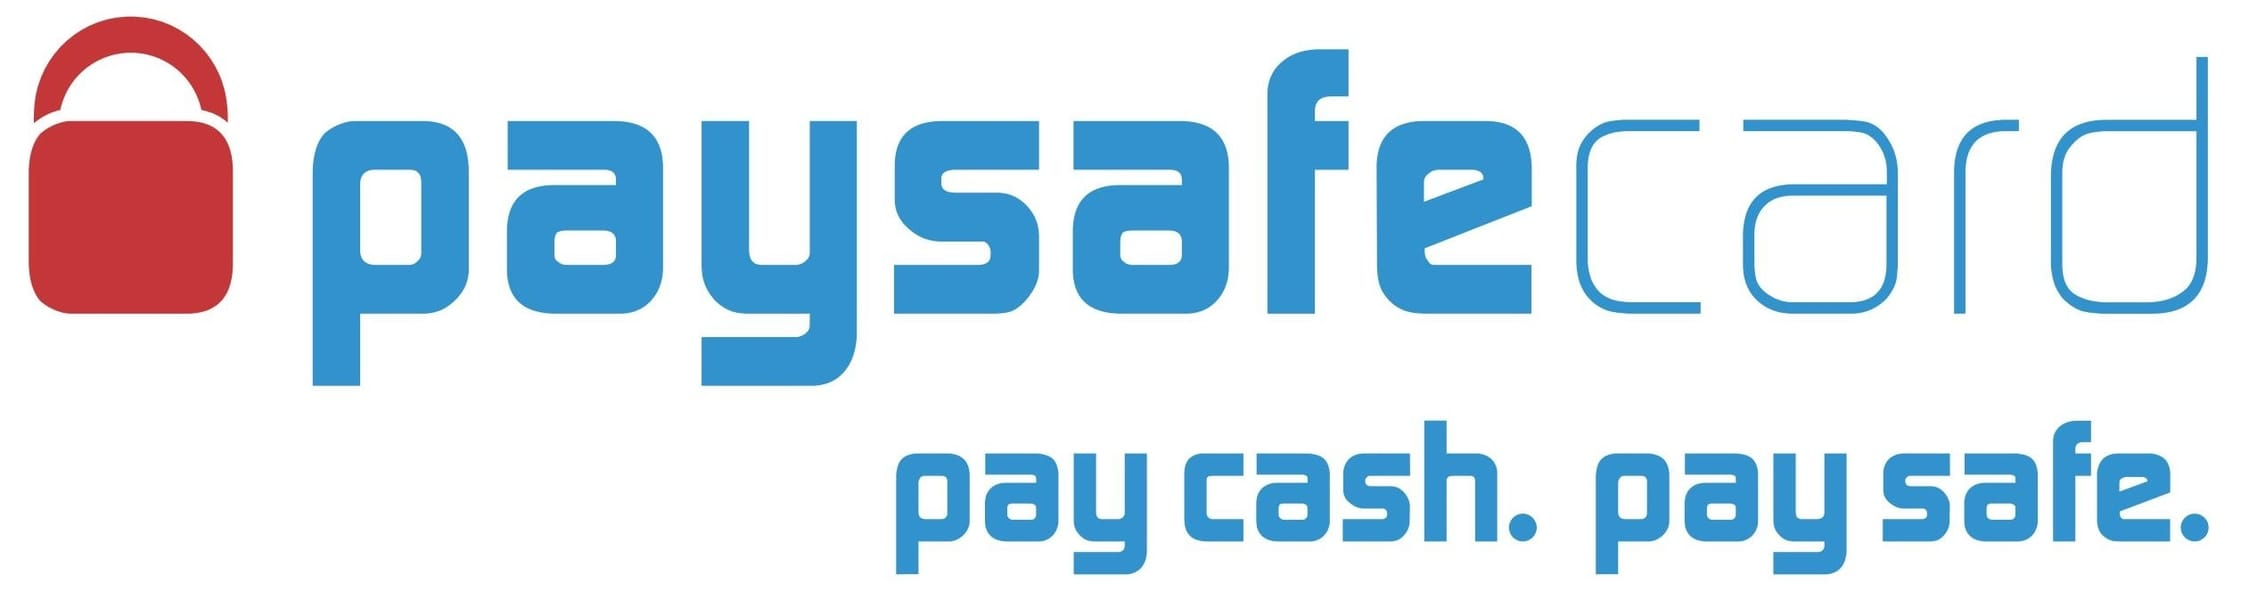 Paysafecard Casino Bank Guide for Canadians